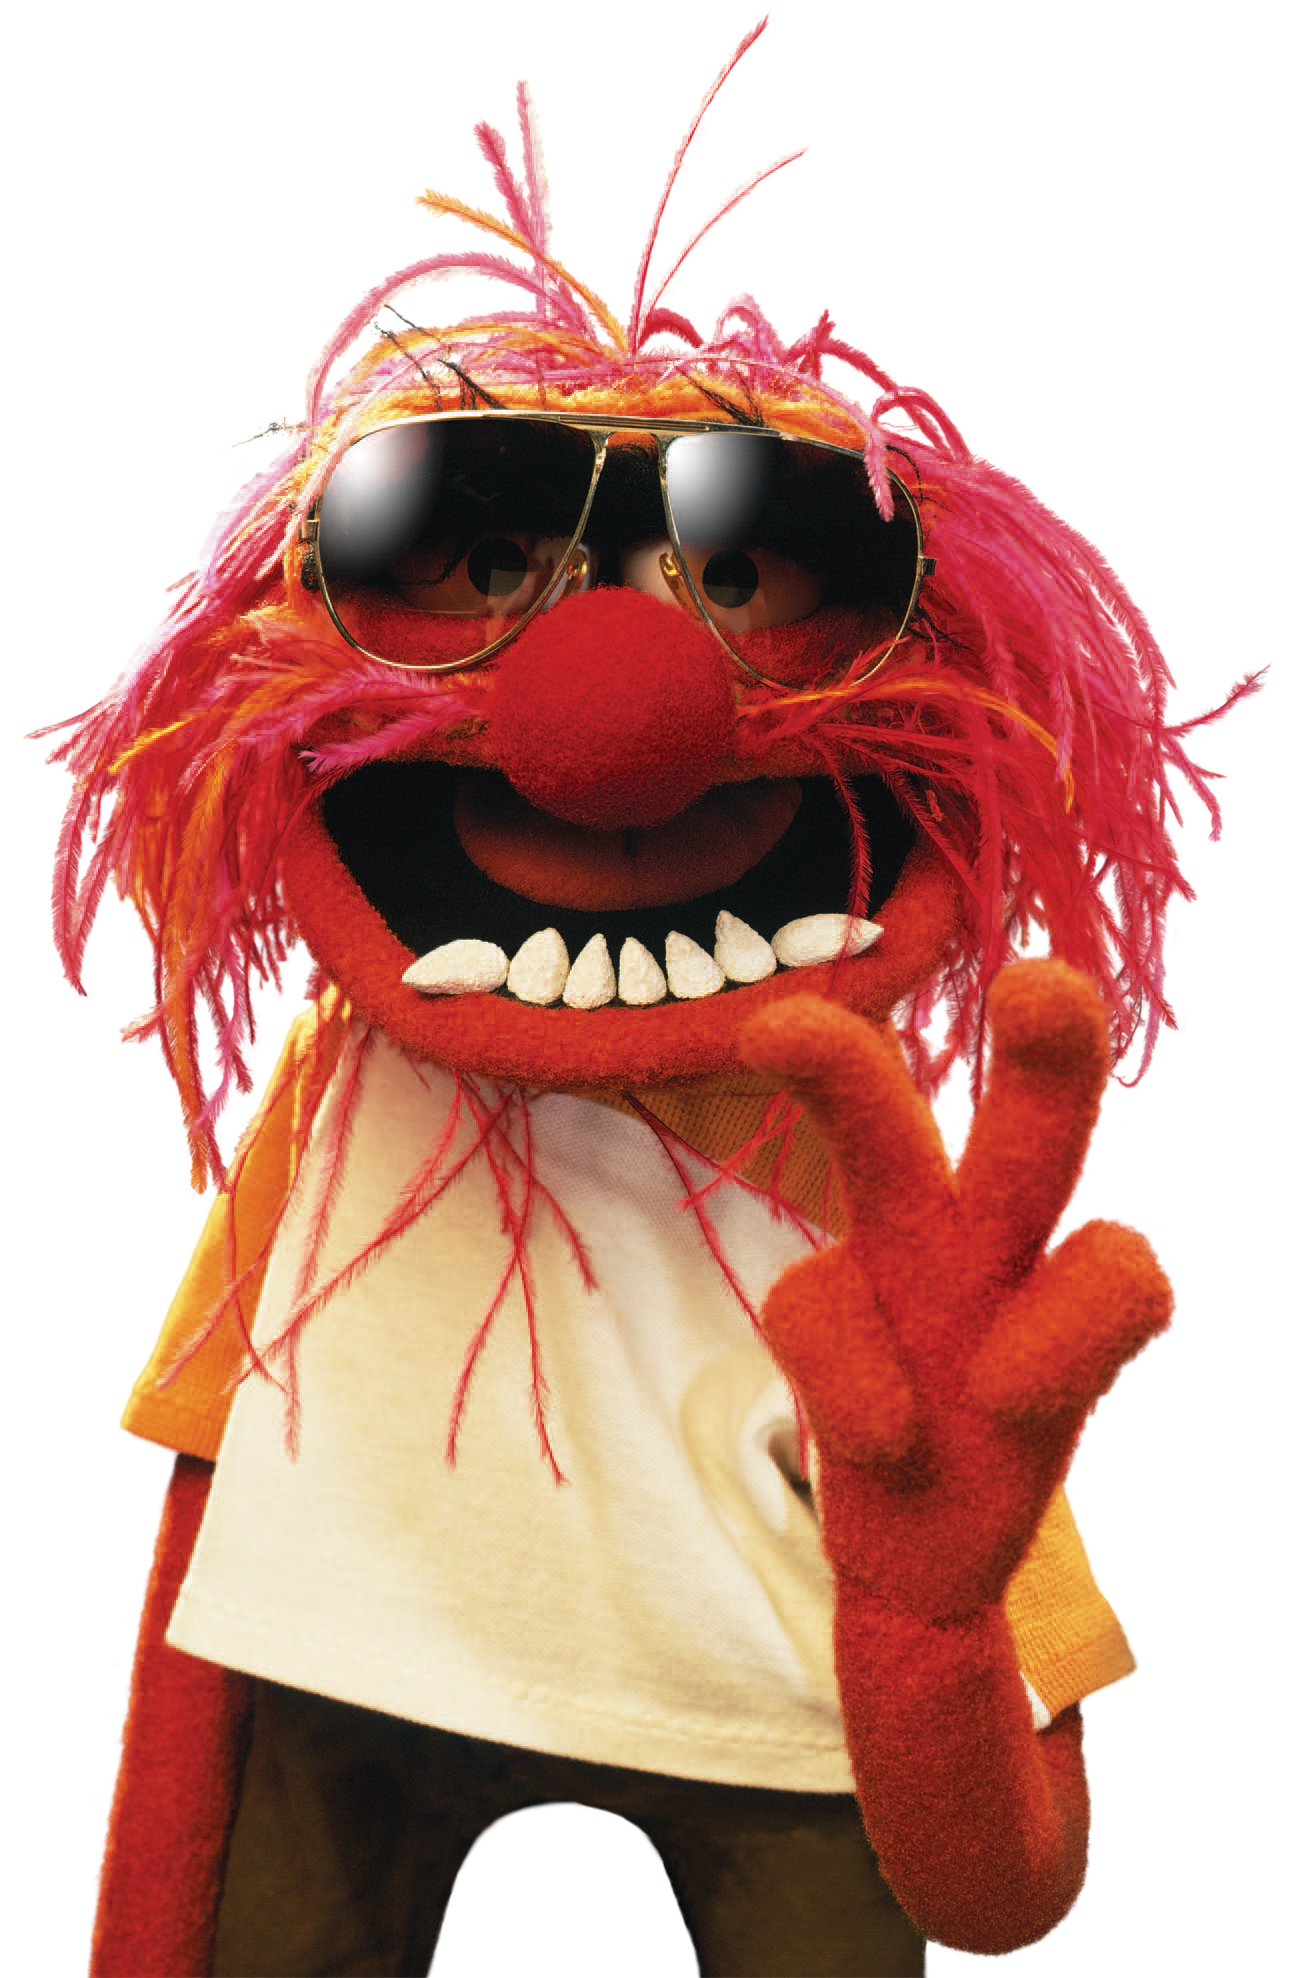 animal muppets - Google Search | Drums | Animal muppet